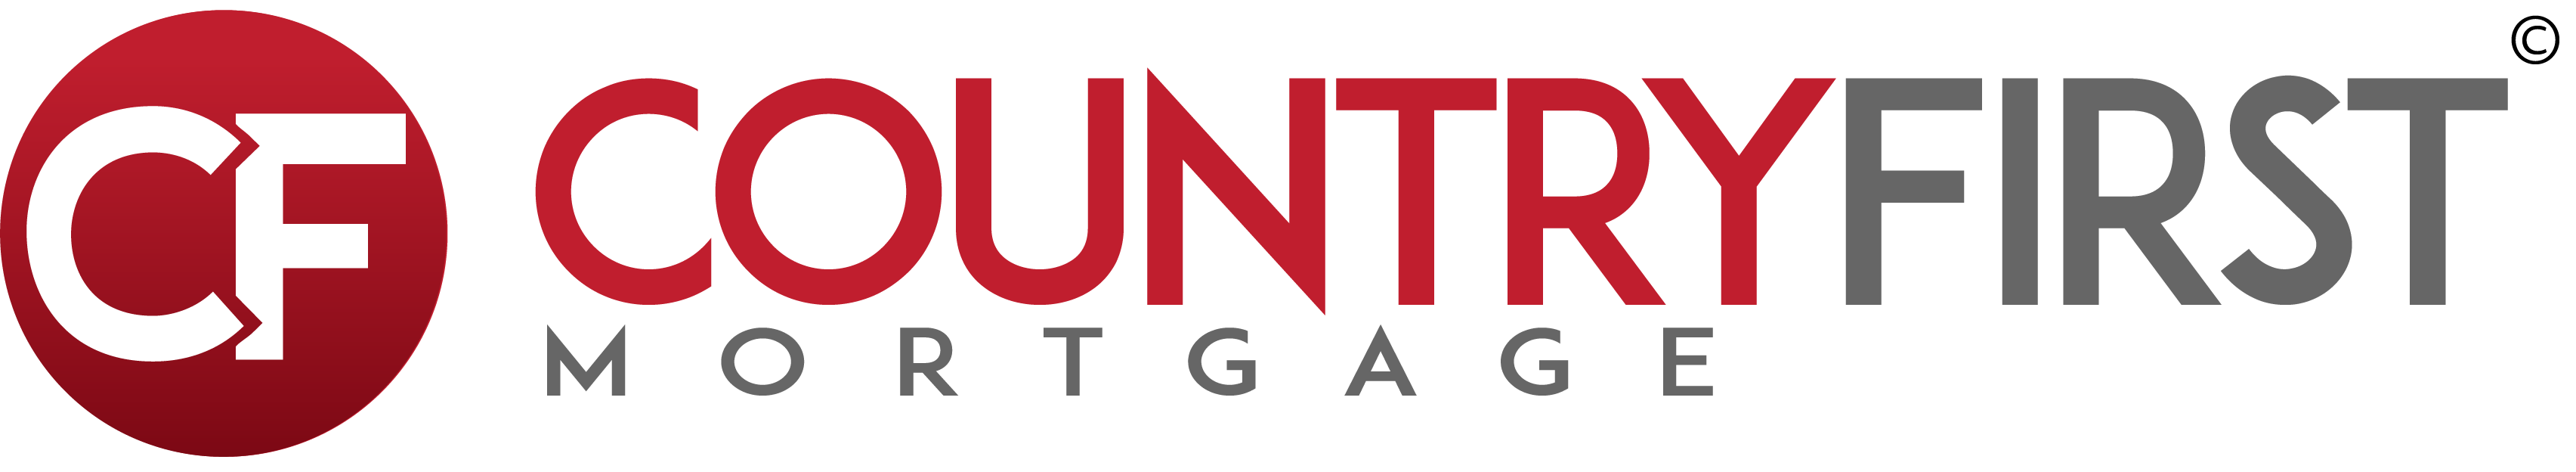 CountryFirst Mortgage Inc